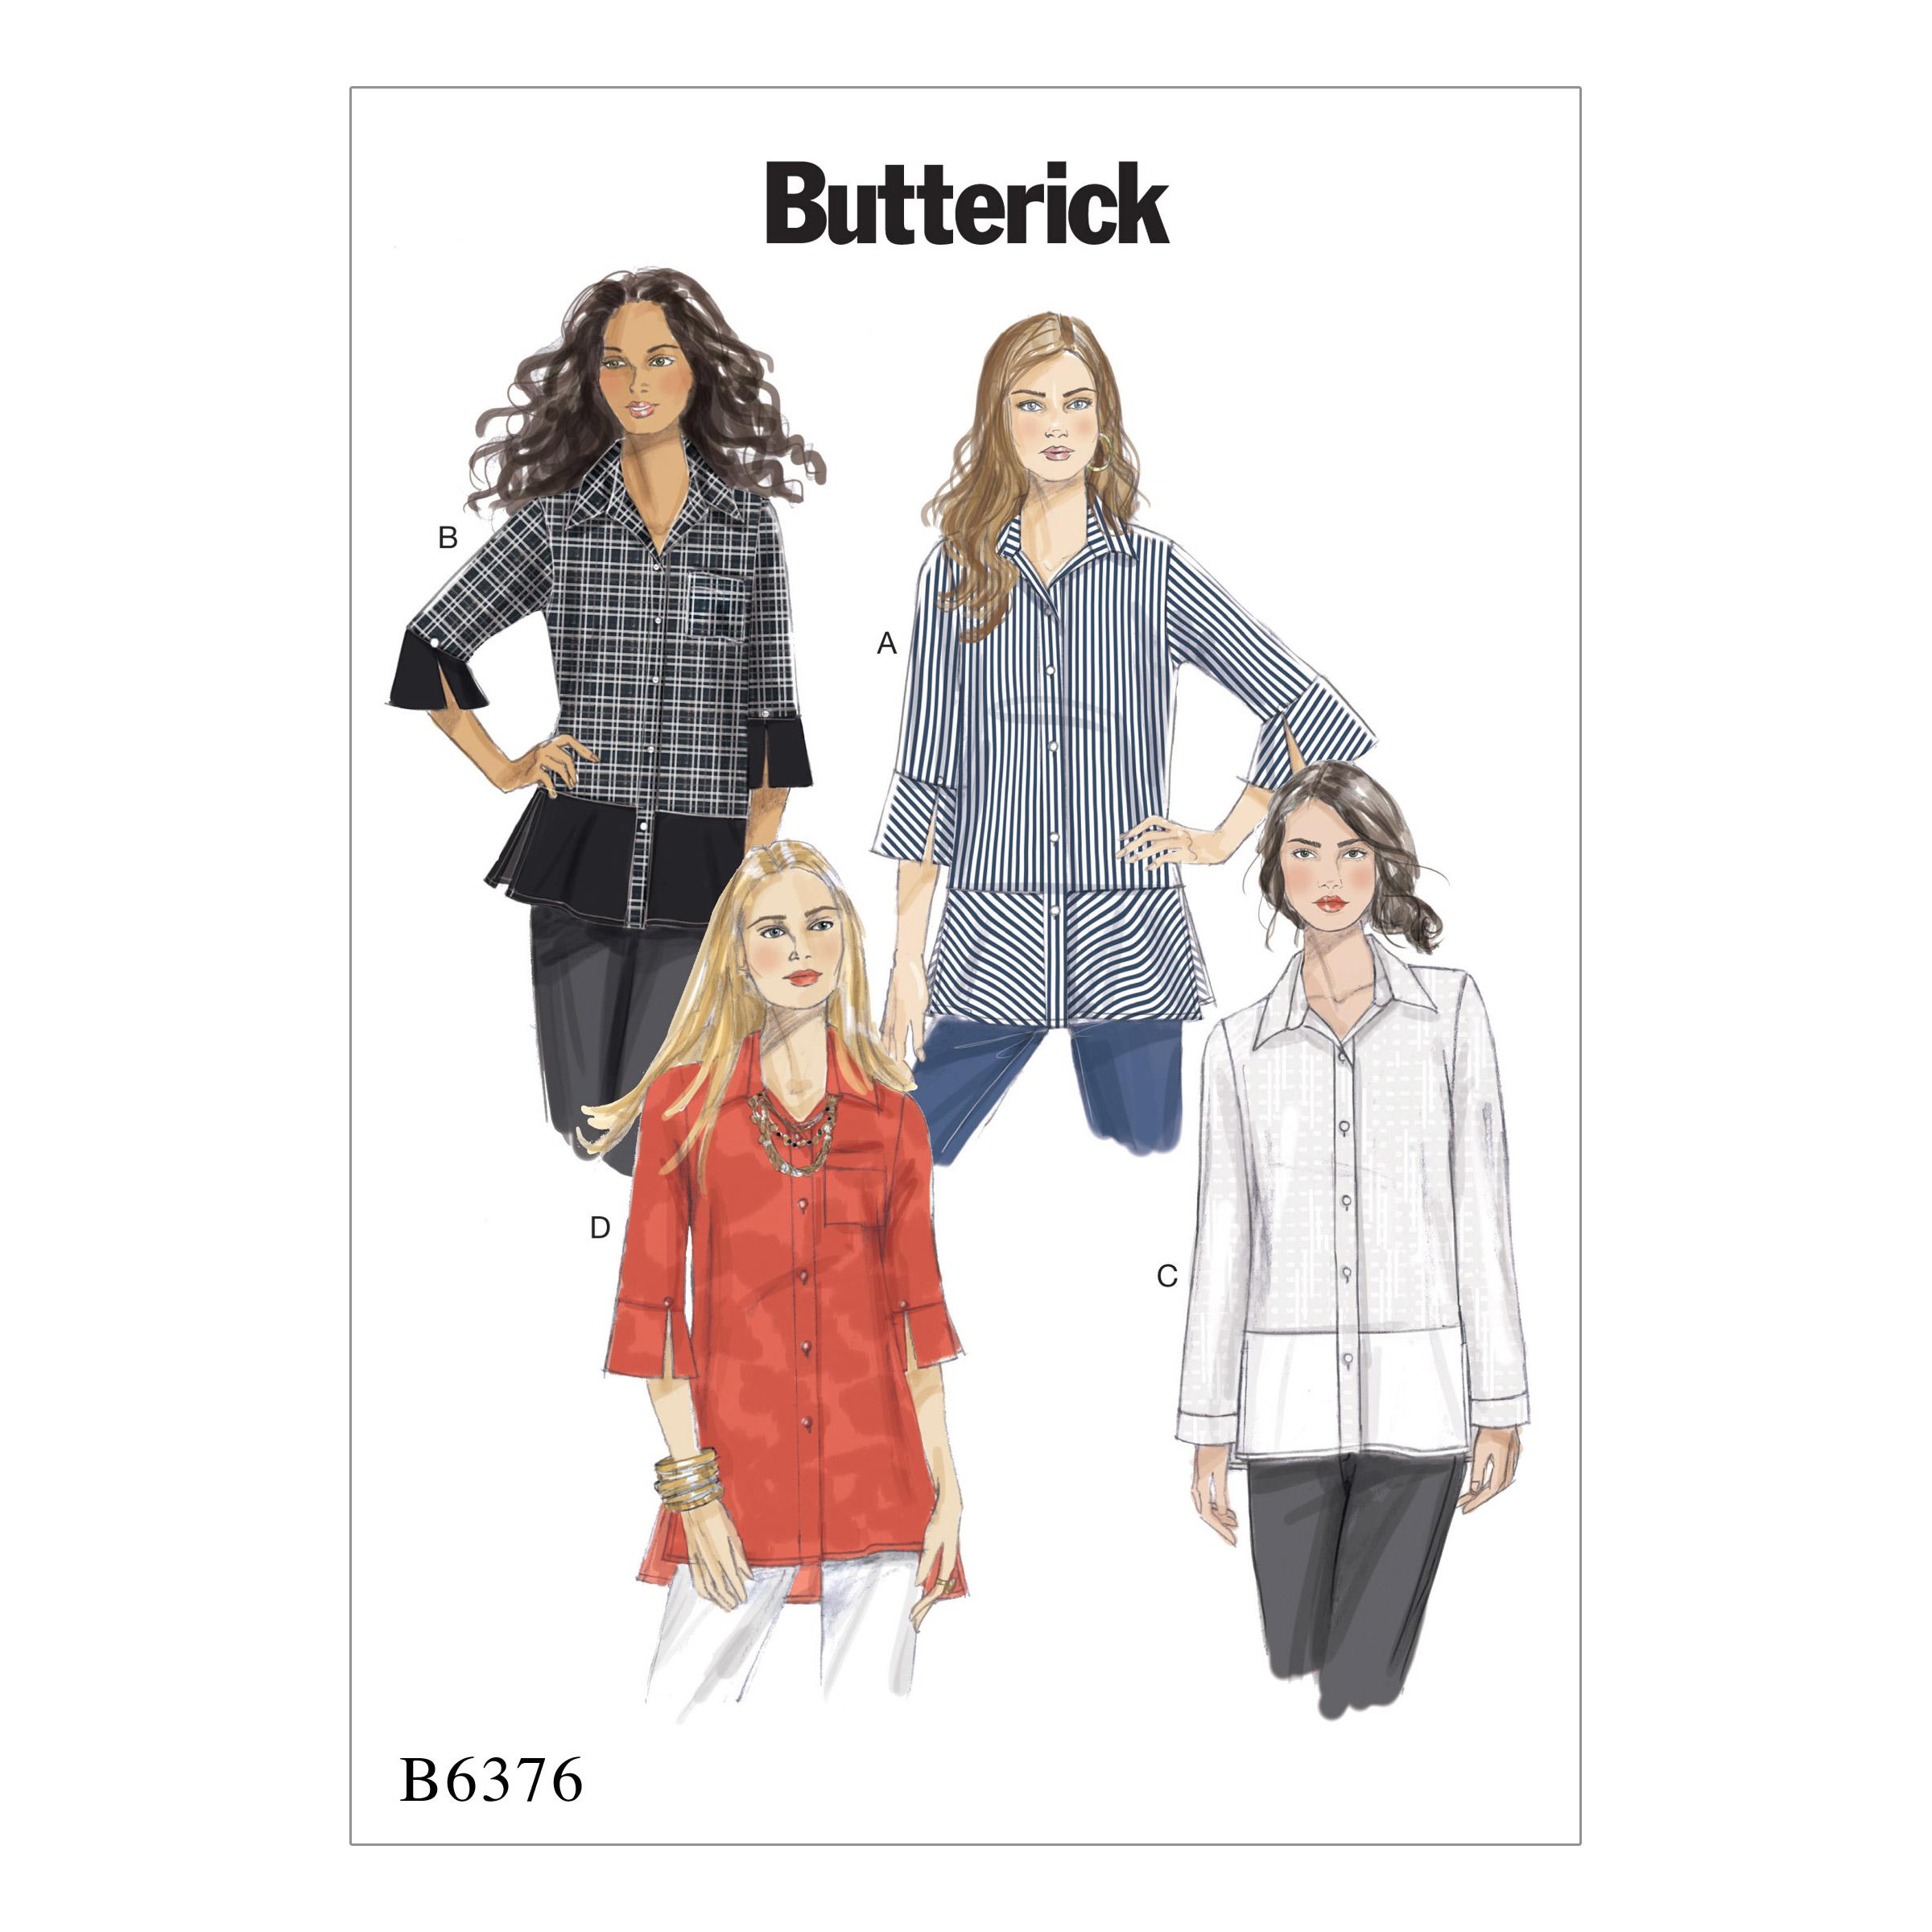 Butterick B6376 Misses' Button-Down Shirts with Side Slits